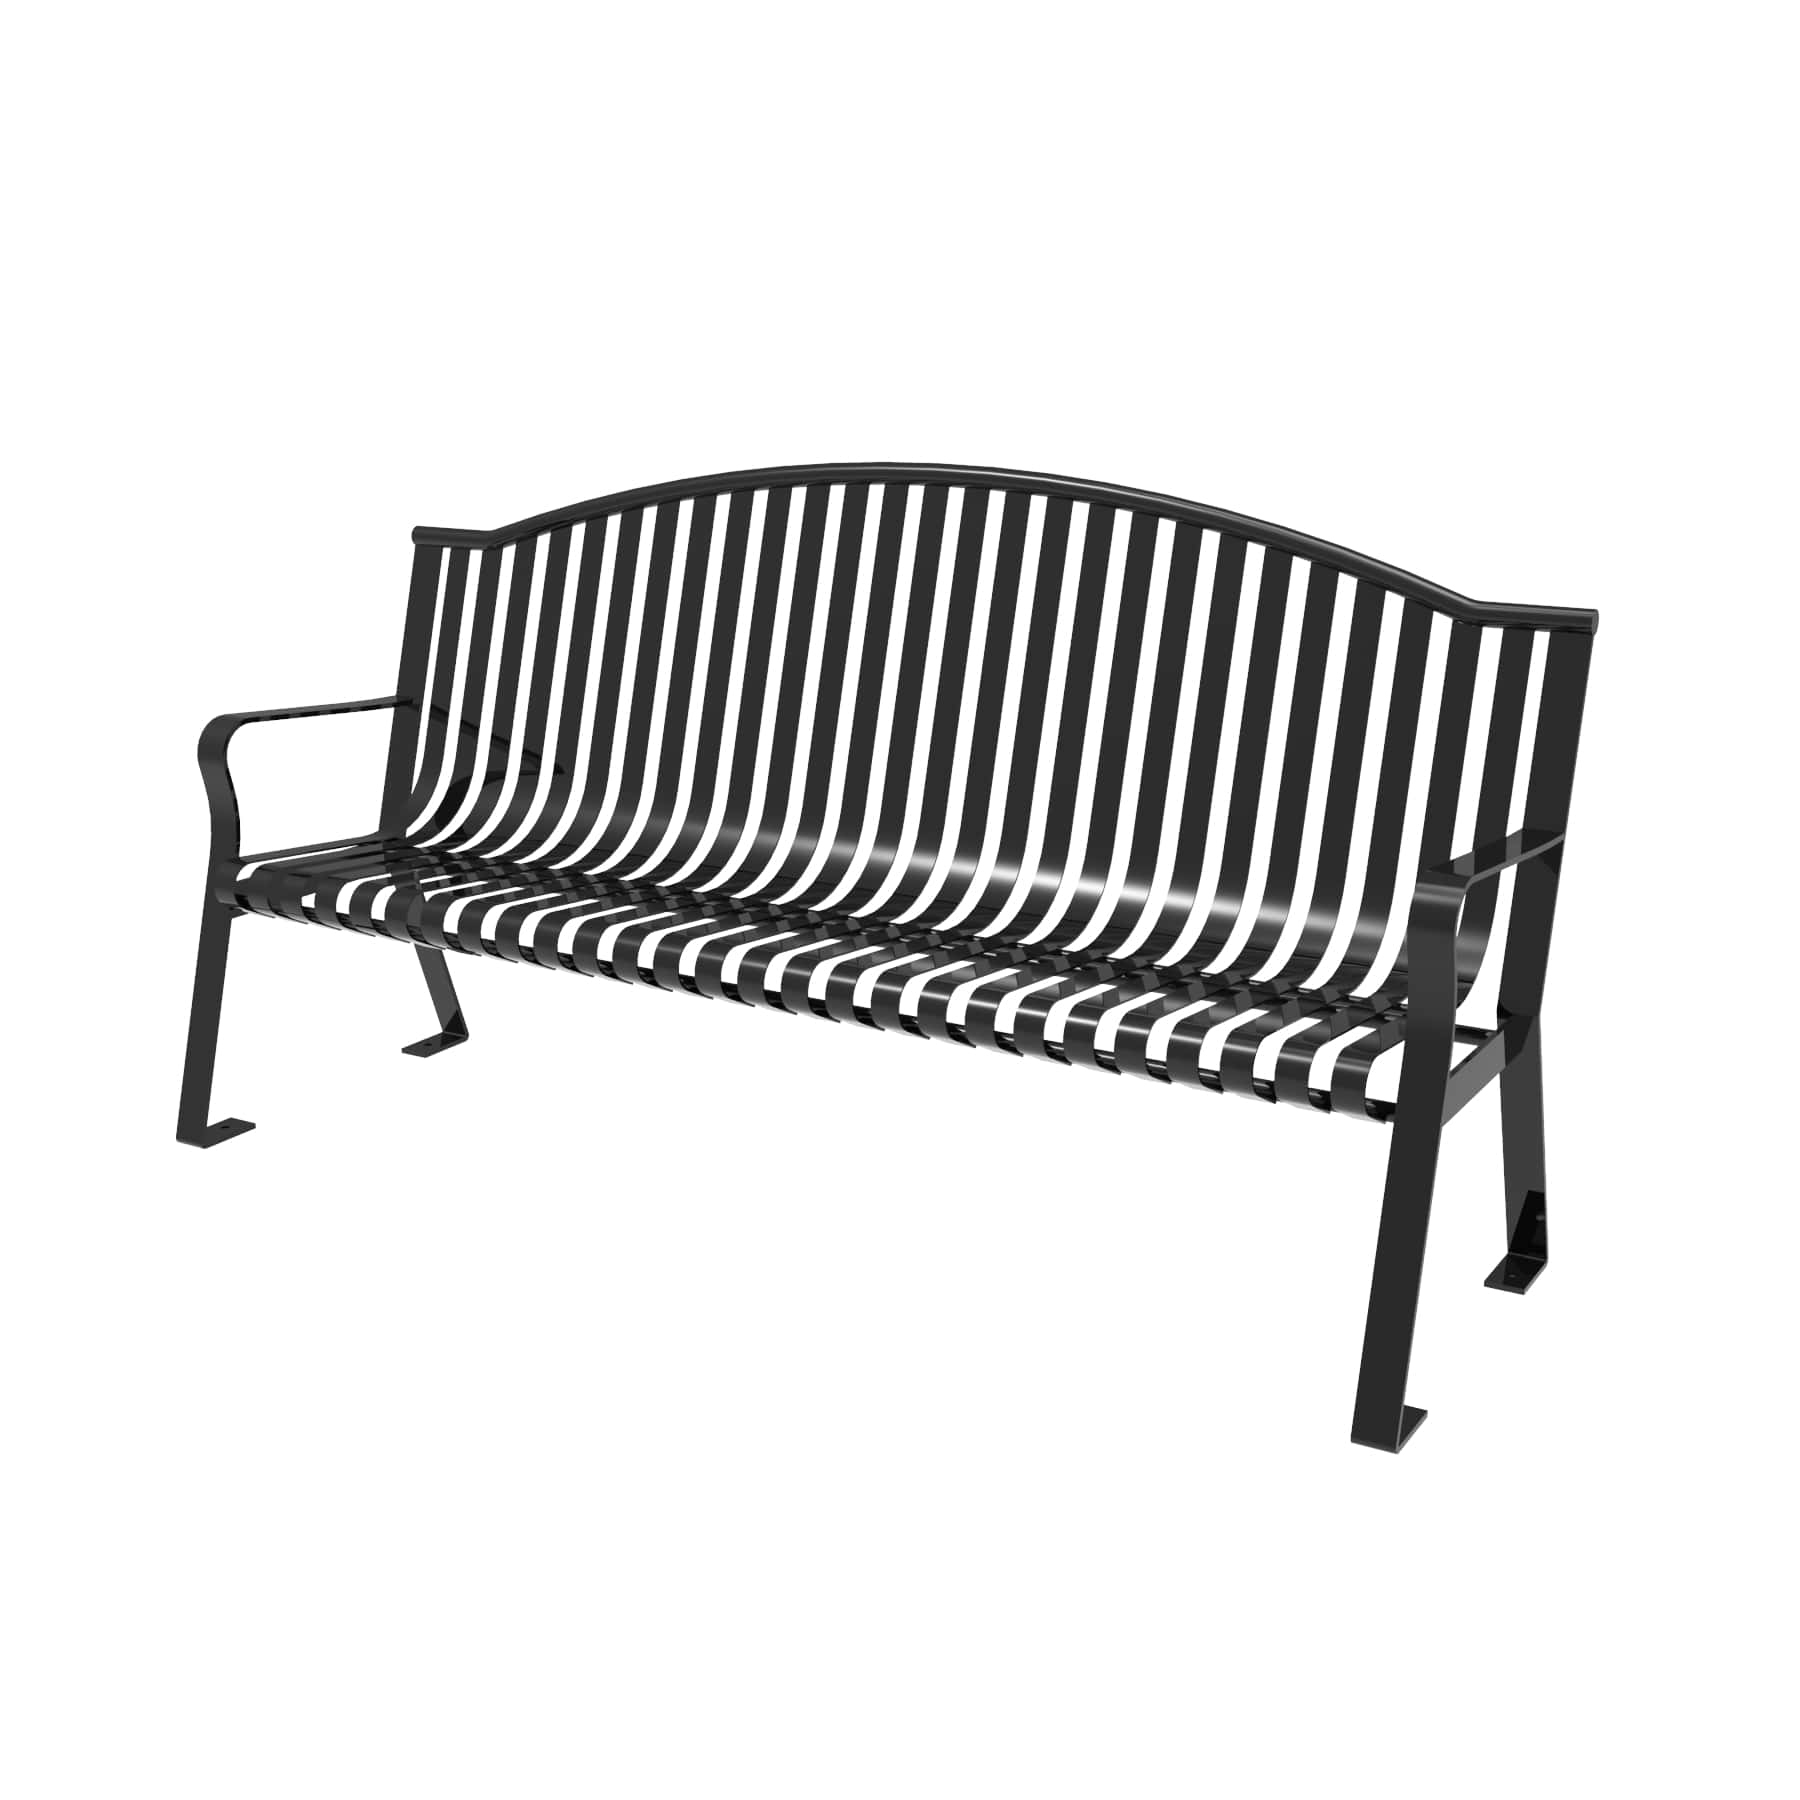 Fabulous Arched Metro Bench Machost Co Dining Chair Design Ideas Machostcouk